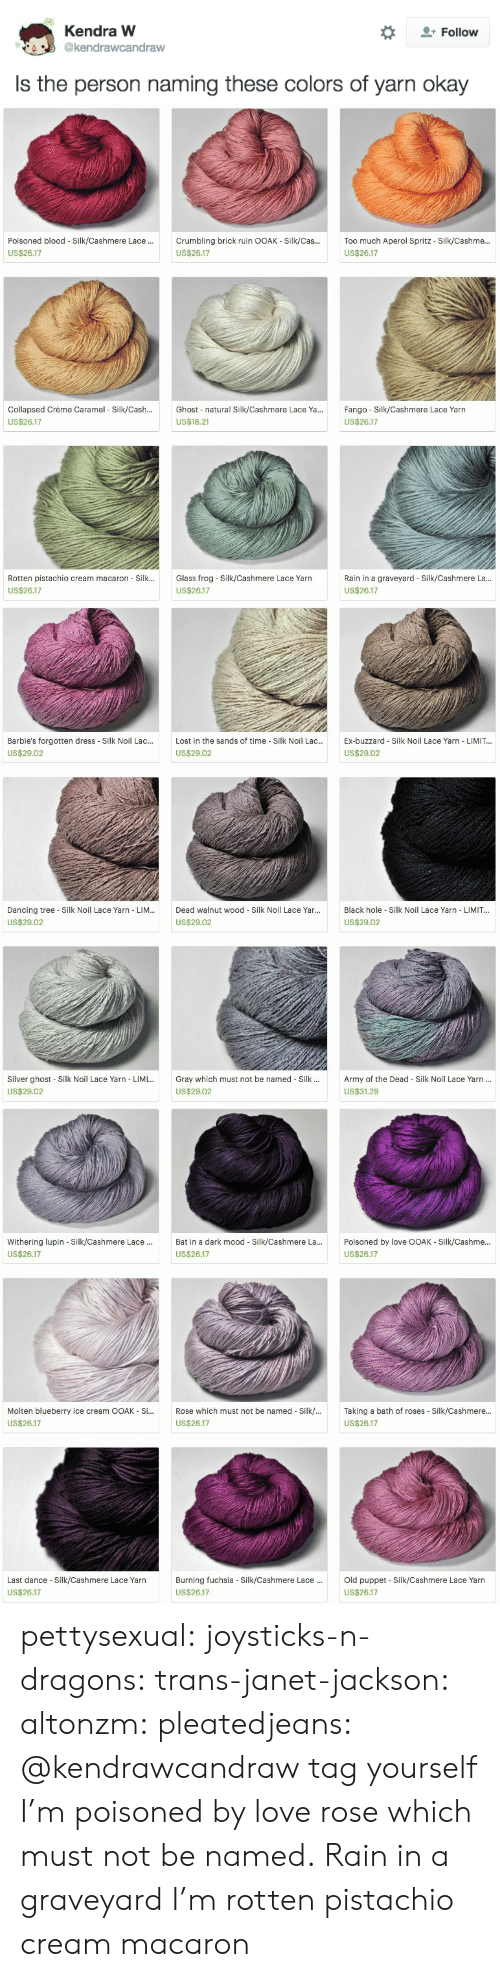 kendra: Kendra W  Follow  @kendrawcandraw  Is the person naming these colors of yarn okay   Poisoned blood Silk/Cashmere Lace .  Crumbling brick ruin OOAK - Silk/Cas..  Too much Aperol Spritz - Silk/Cashme...  US$26.17  US$26.17  US$26.17  Ghost natural Silk/Cashmere Lace Ya...  Collapsed Crème Caramel Silk/Cash...  Fango Silk/Cashmere Lace Yarn  US$26.17  US$18.21  US$26.17  Rotten pistachio cream macaron Silk...  Glass frog-Silk/Cashmere Lace Yarn  Rain in a graveyard Silk/Cashmere La...  US$26.17  US$26.17  US$26.17   Barbie's forgotten dress Silk Noil Lac...  Lost in the sands of time Silk Noil Lac...  Ex-buzzard Silk Noil Lace Yarn LIMIT...  US$29.02  US$29.02  US$29.02  Black hole Silk Noil Lace Yarn - LIMIT...  Dancing tree Silk Noil Lace Yarn LIM...  Dead walnut wood Silk Noil Lace Yar...  US$29.02  US$29.02  US$29.02  Silver ghost Silk Noil Lace Yarn LIMI...  Gray which must not be named Silk.  Army of the Dead Silk Noil Lace Yarn...  US$29.02  US$29.02  US$31.29   Withering lupin Silk/Cashmere Lace..  Bat in a dark mood Silk/Cashmere La...  Poisoned by love OOAK Silk/Cashme...  US$26.17  US$26.17  US$26.17  Molten blueberry ice cream OOAK Si...  Rose which must not be named Silk/...  Taking a bath of roses Silk/Cashmere...  US$26.17  US$26.17  US$26.17  Old puppet Silk/Cashmere Lace Yarn  Last dance Silk/Cashmere Lace Yarn  Burning fuchsia - Silk/Cashmere Lace...  US$26.17  US$26.17  US$26.17 pettysexual:  joysticks-n-dragons:  trans-janet-jackson:  altonzm:  pleatedjeans:  @kendrawcandraw  tag yourself I'm poisoned by love  rose which must not be named.  Rain in a graveyard  I'm rotten pistachio cream macaron